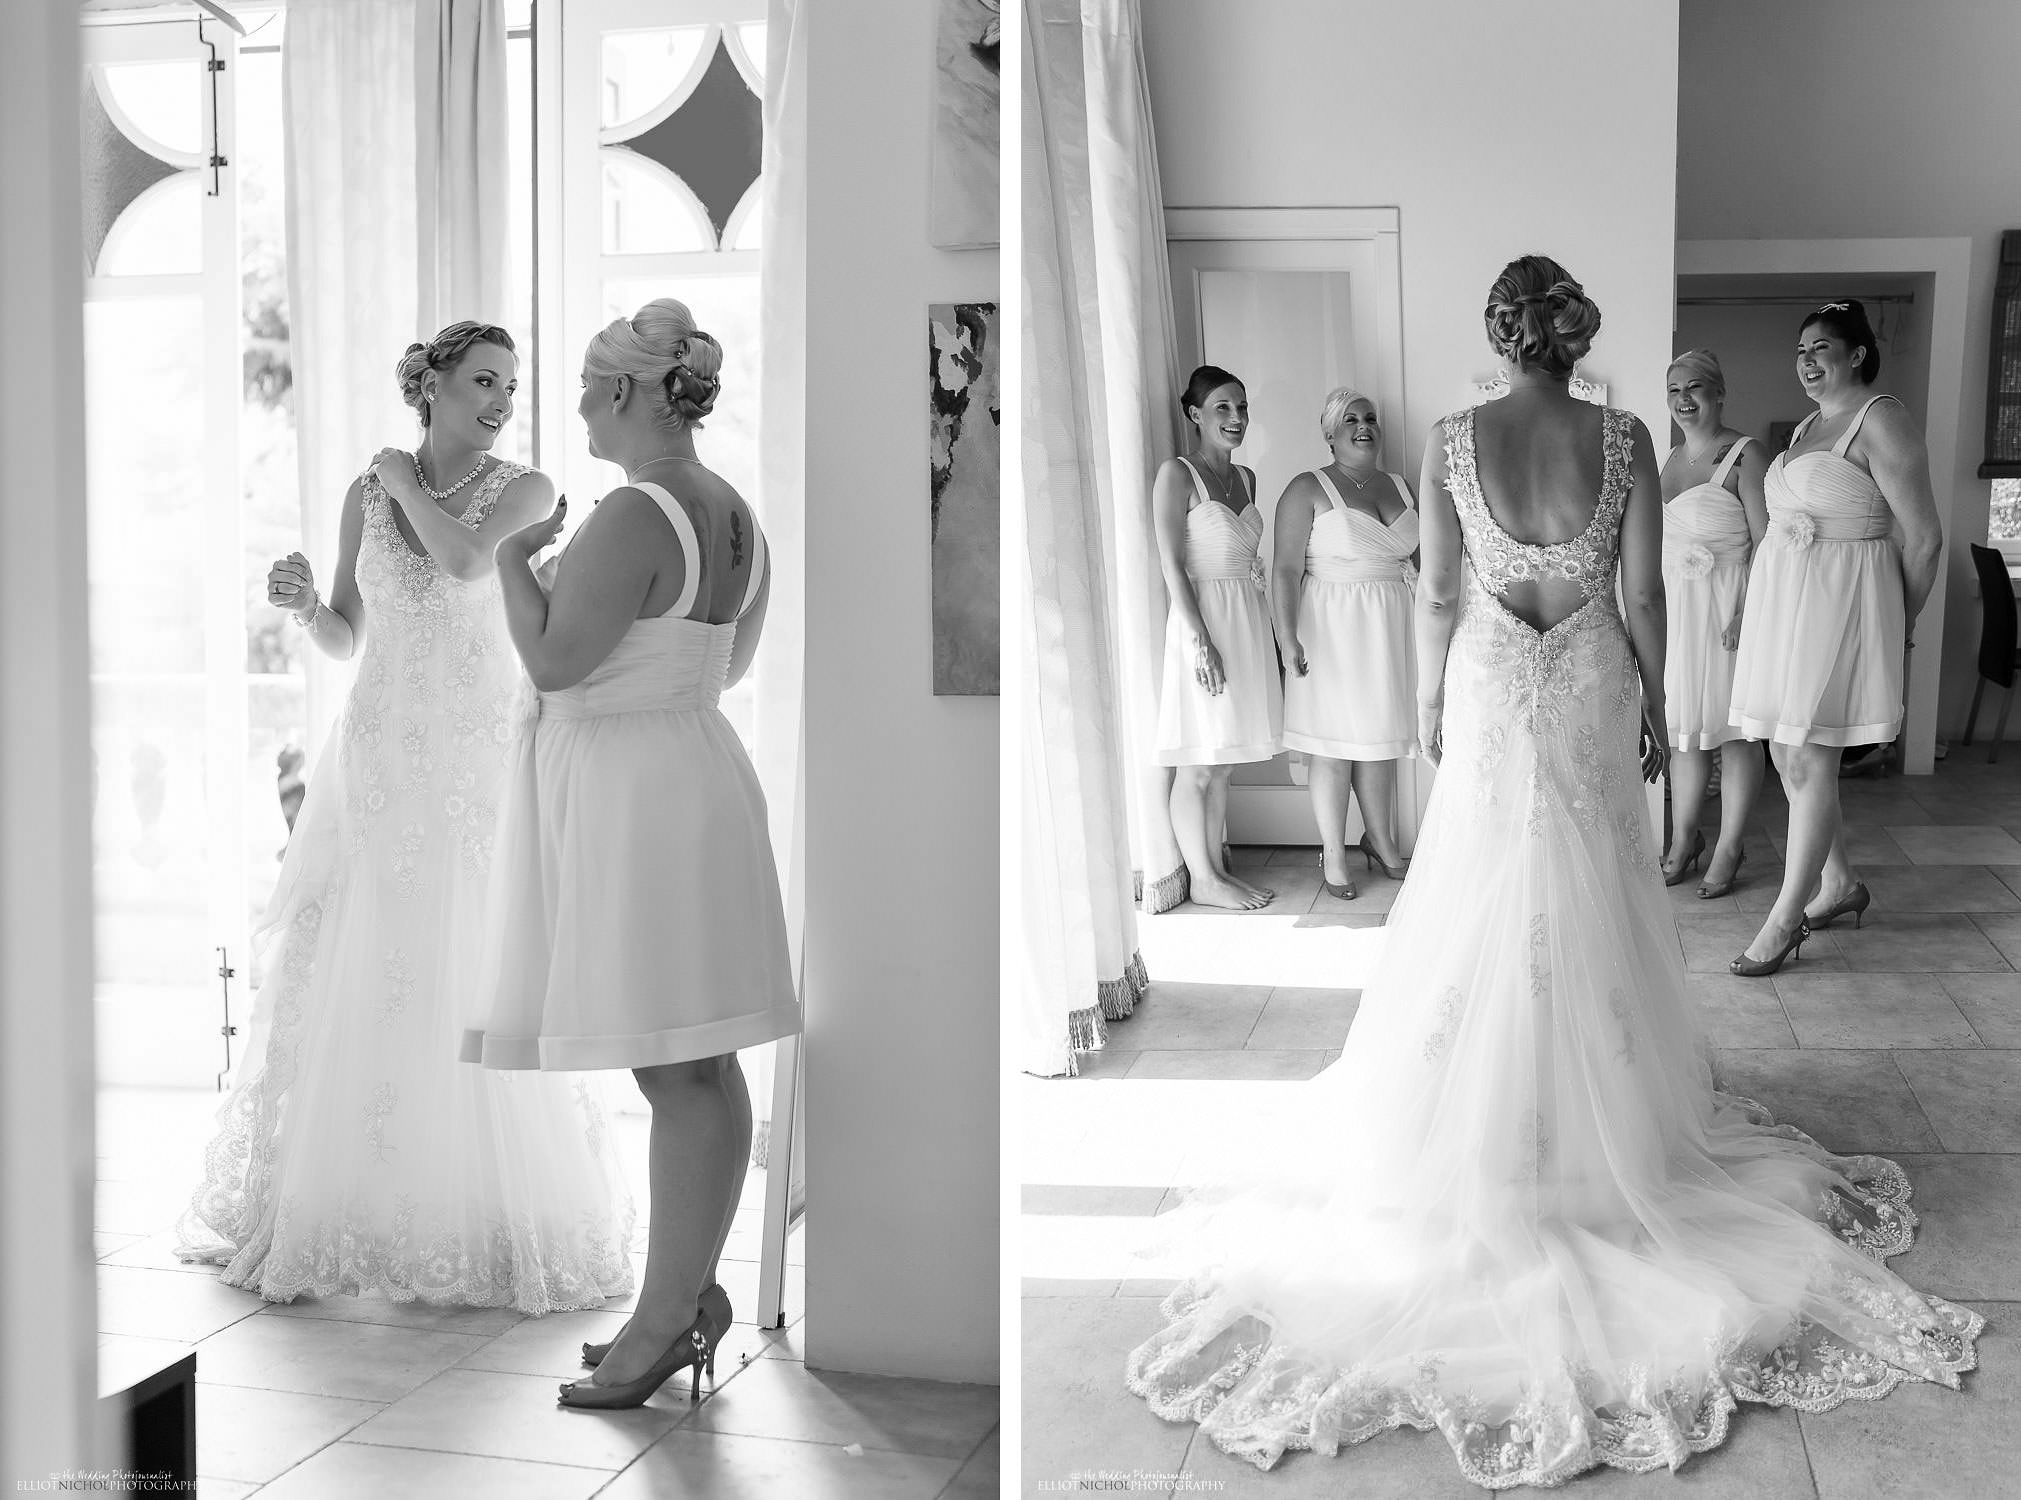 Bride with her bridesmaids before they leave for the wedding ceremony.